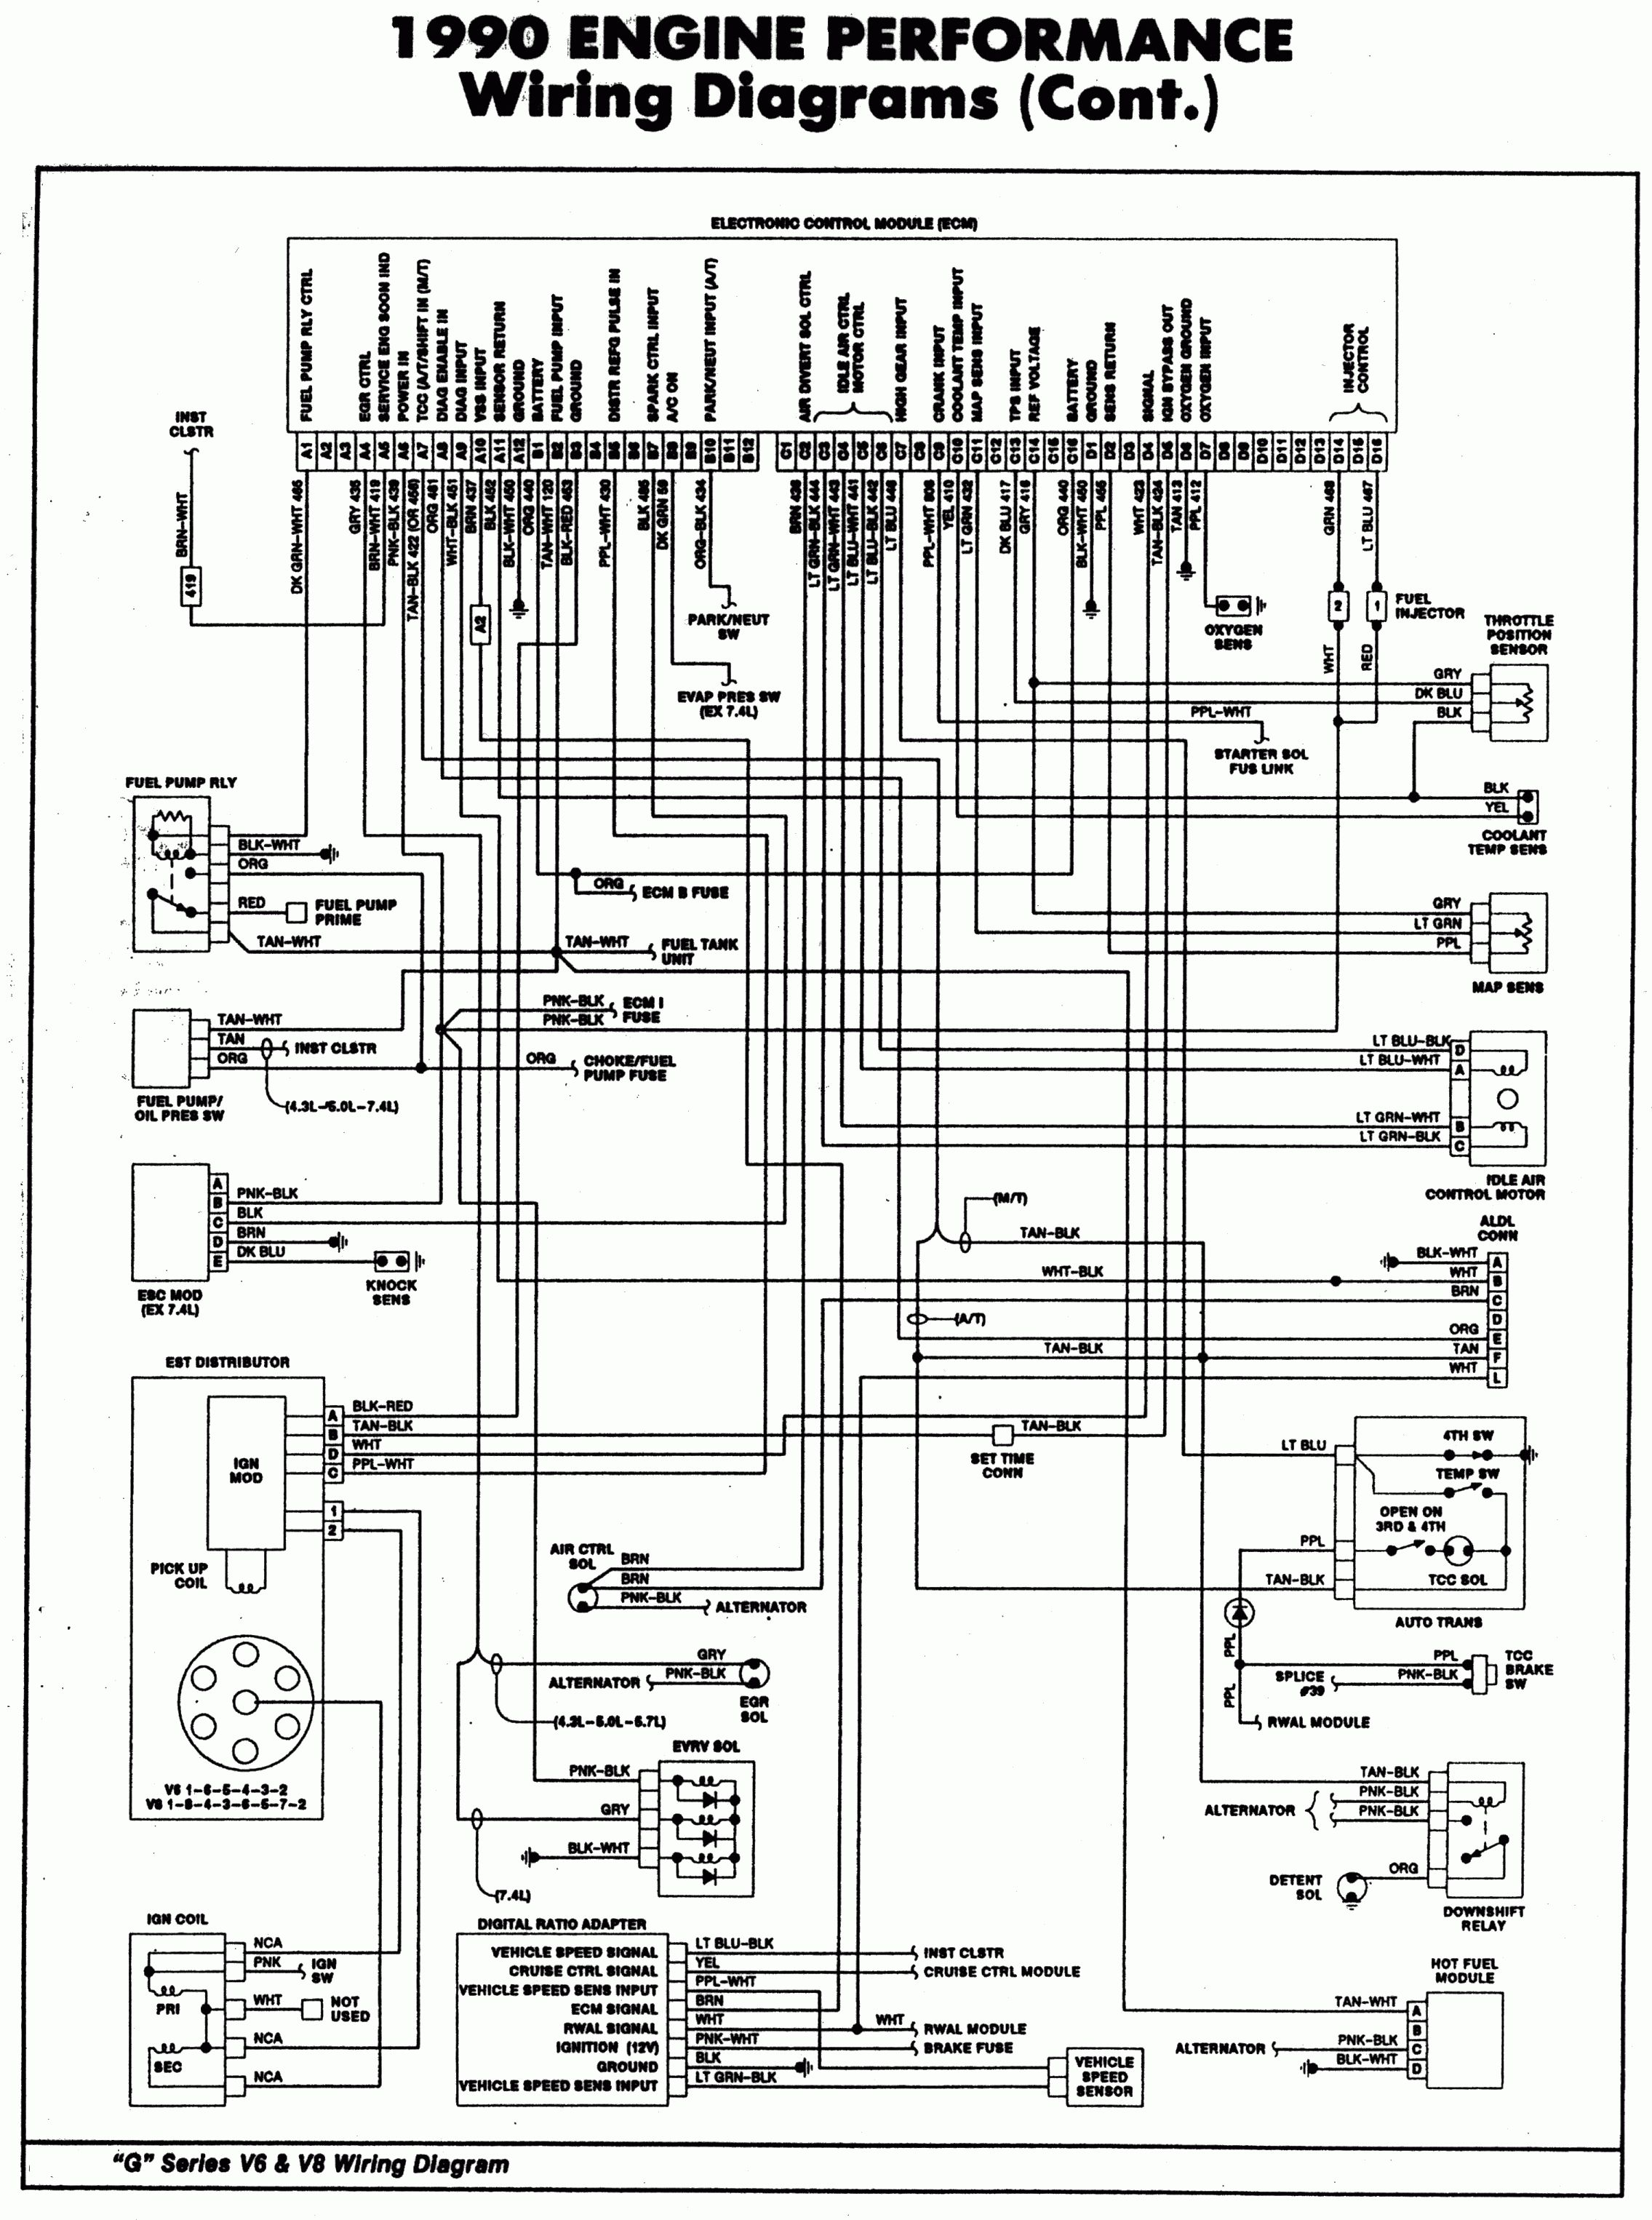 1984 s10 wiring harness diagram 1990 engine performance wiring diagram with control module and  1990 engine performance wiring diagram